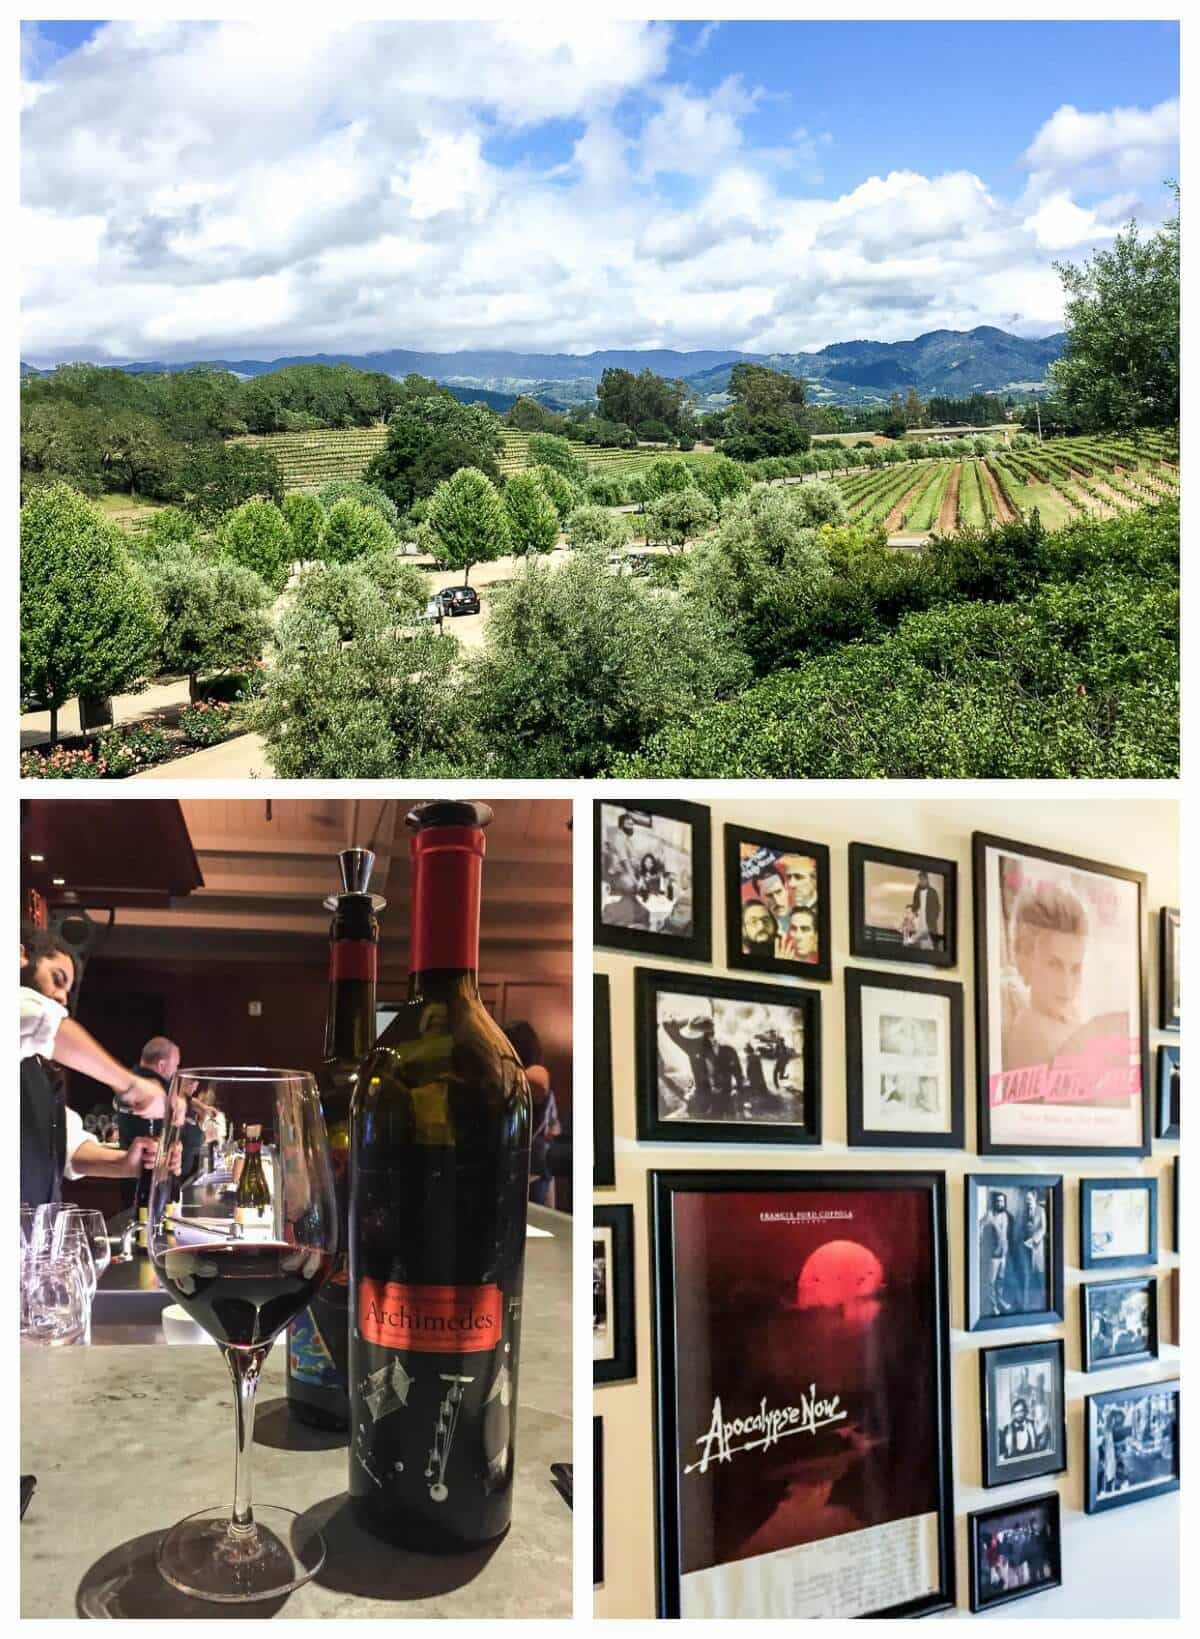 Francis Ford Coppola—one of the best wineries in Sonoma Valley California